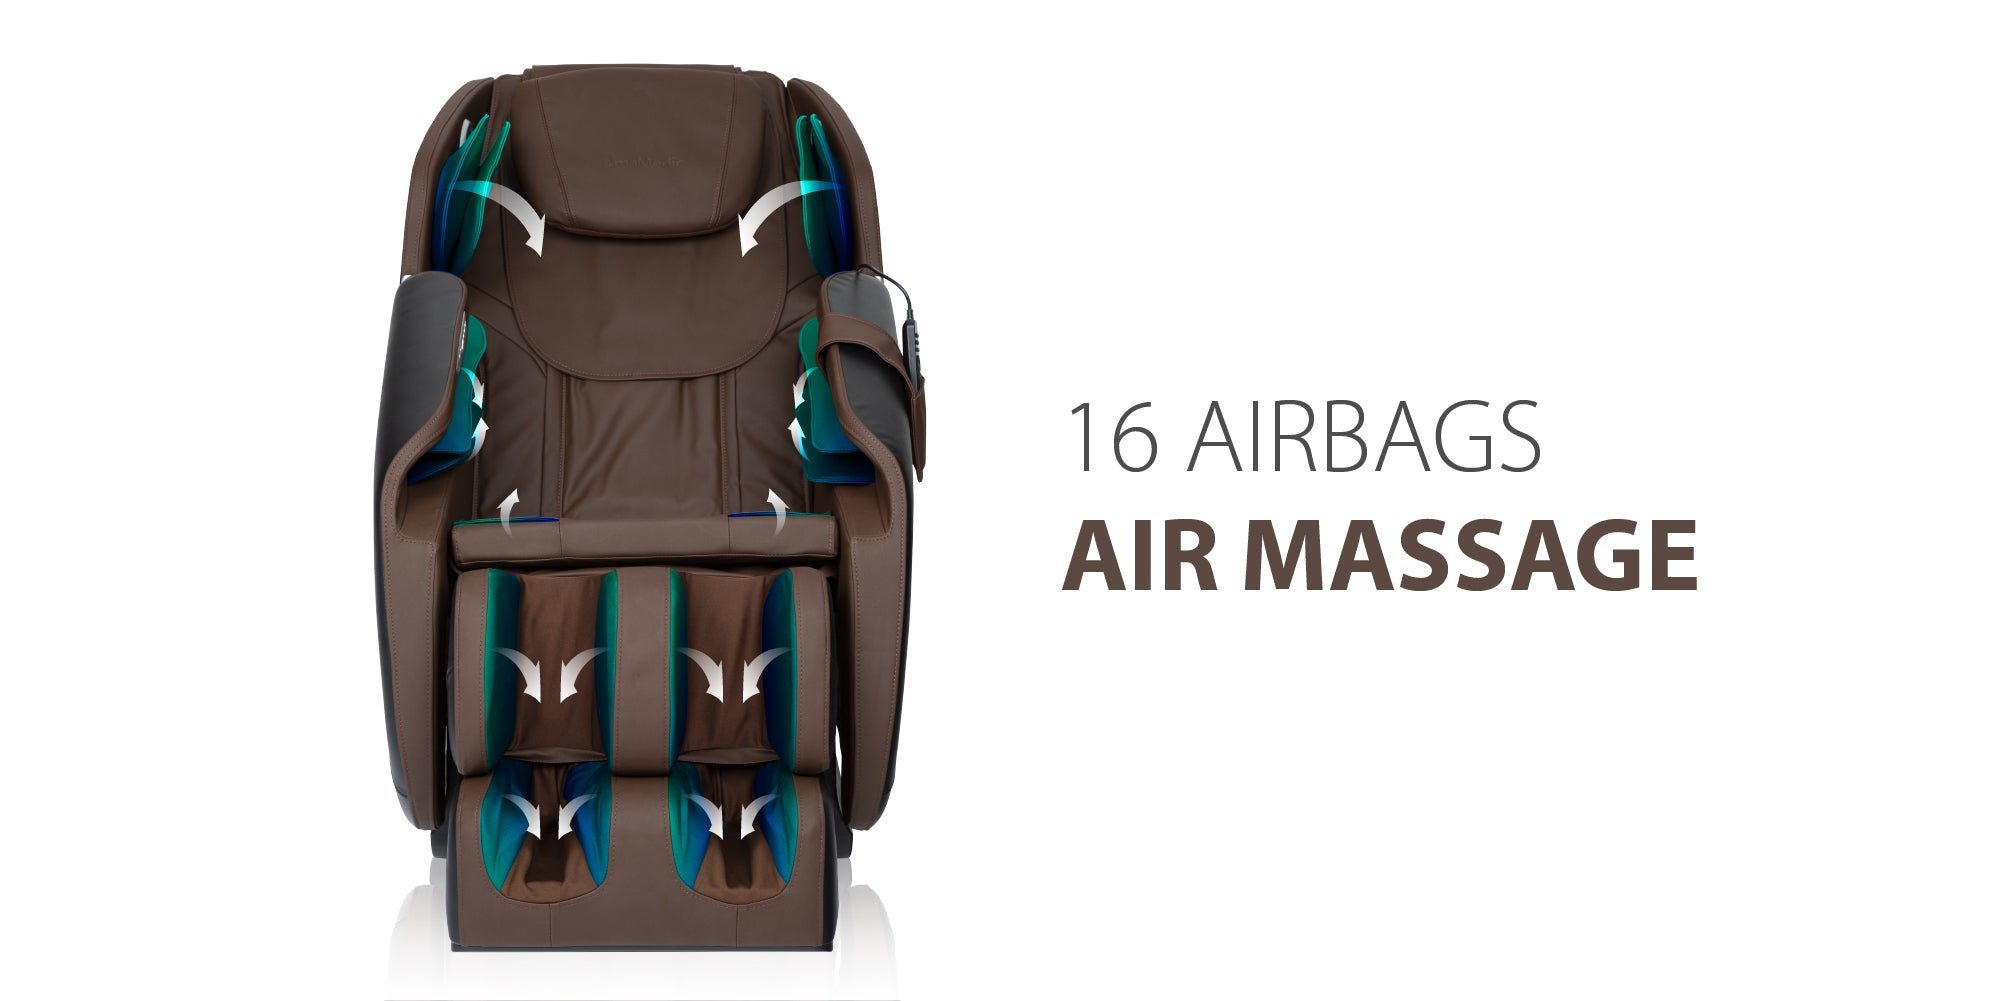 16 Airbags Air Massage